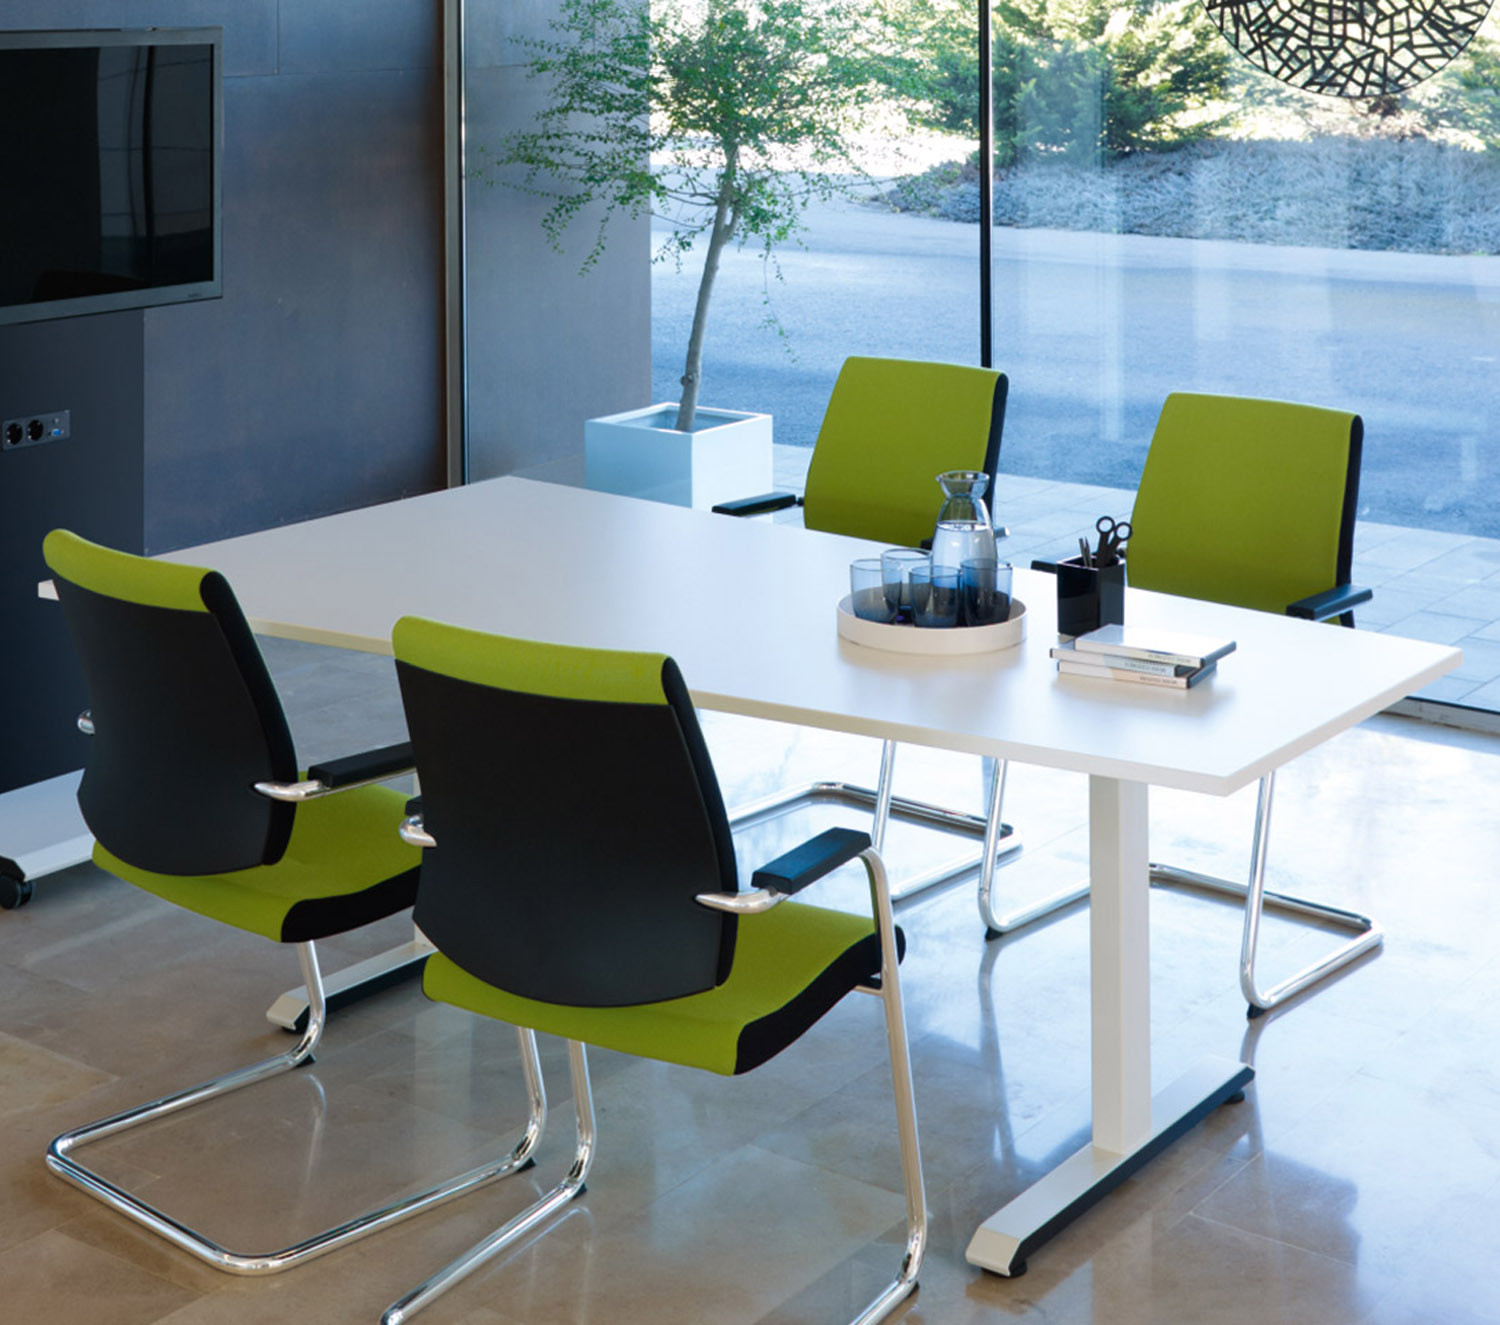 Temptation C Meeting Table by Sedus